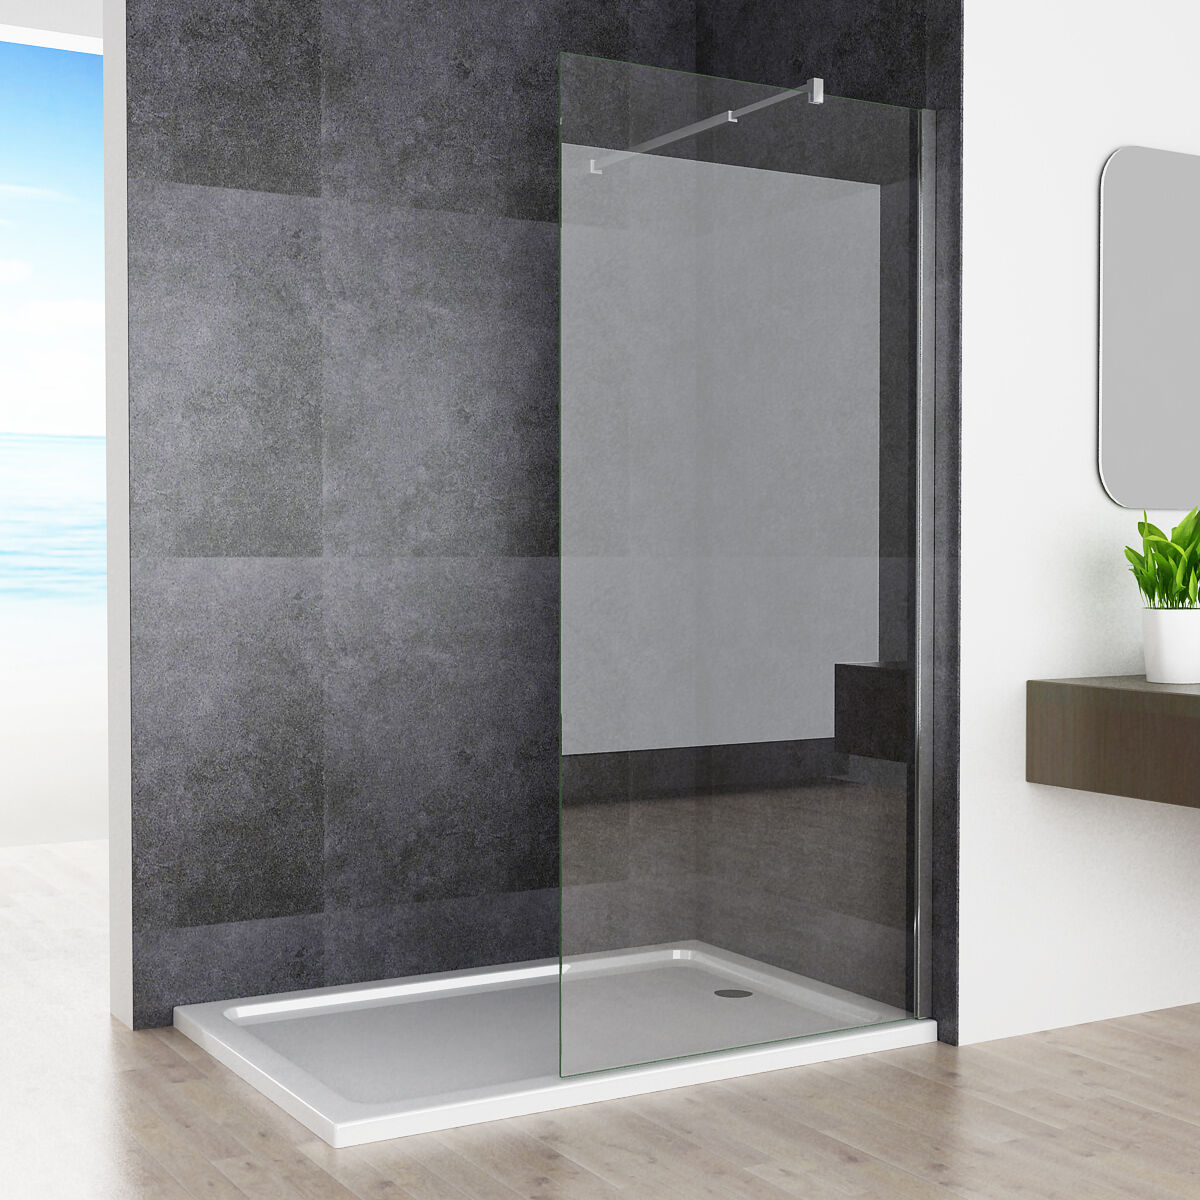 80 x 200cm walk in dusche duschabtrennung duschwand duschkabine 10mm nano glas ebay. Black Bedroom Furniture Sets. Home Design Ideas